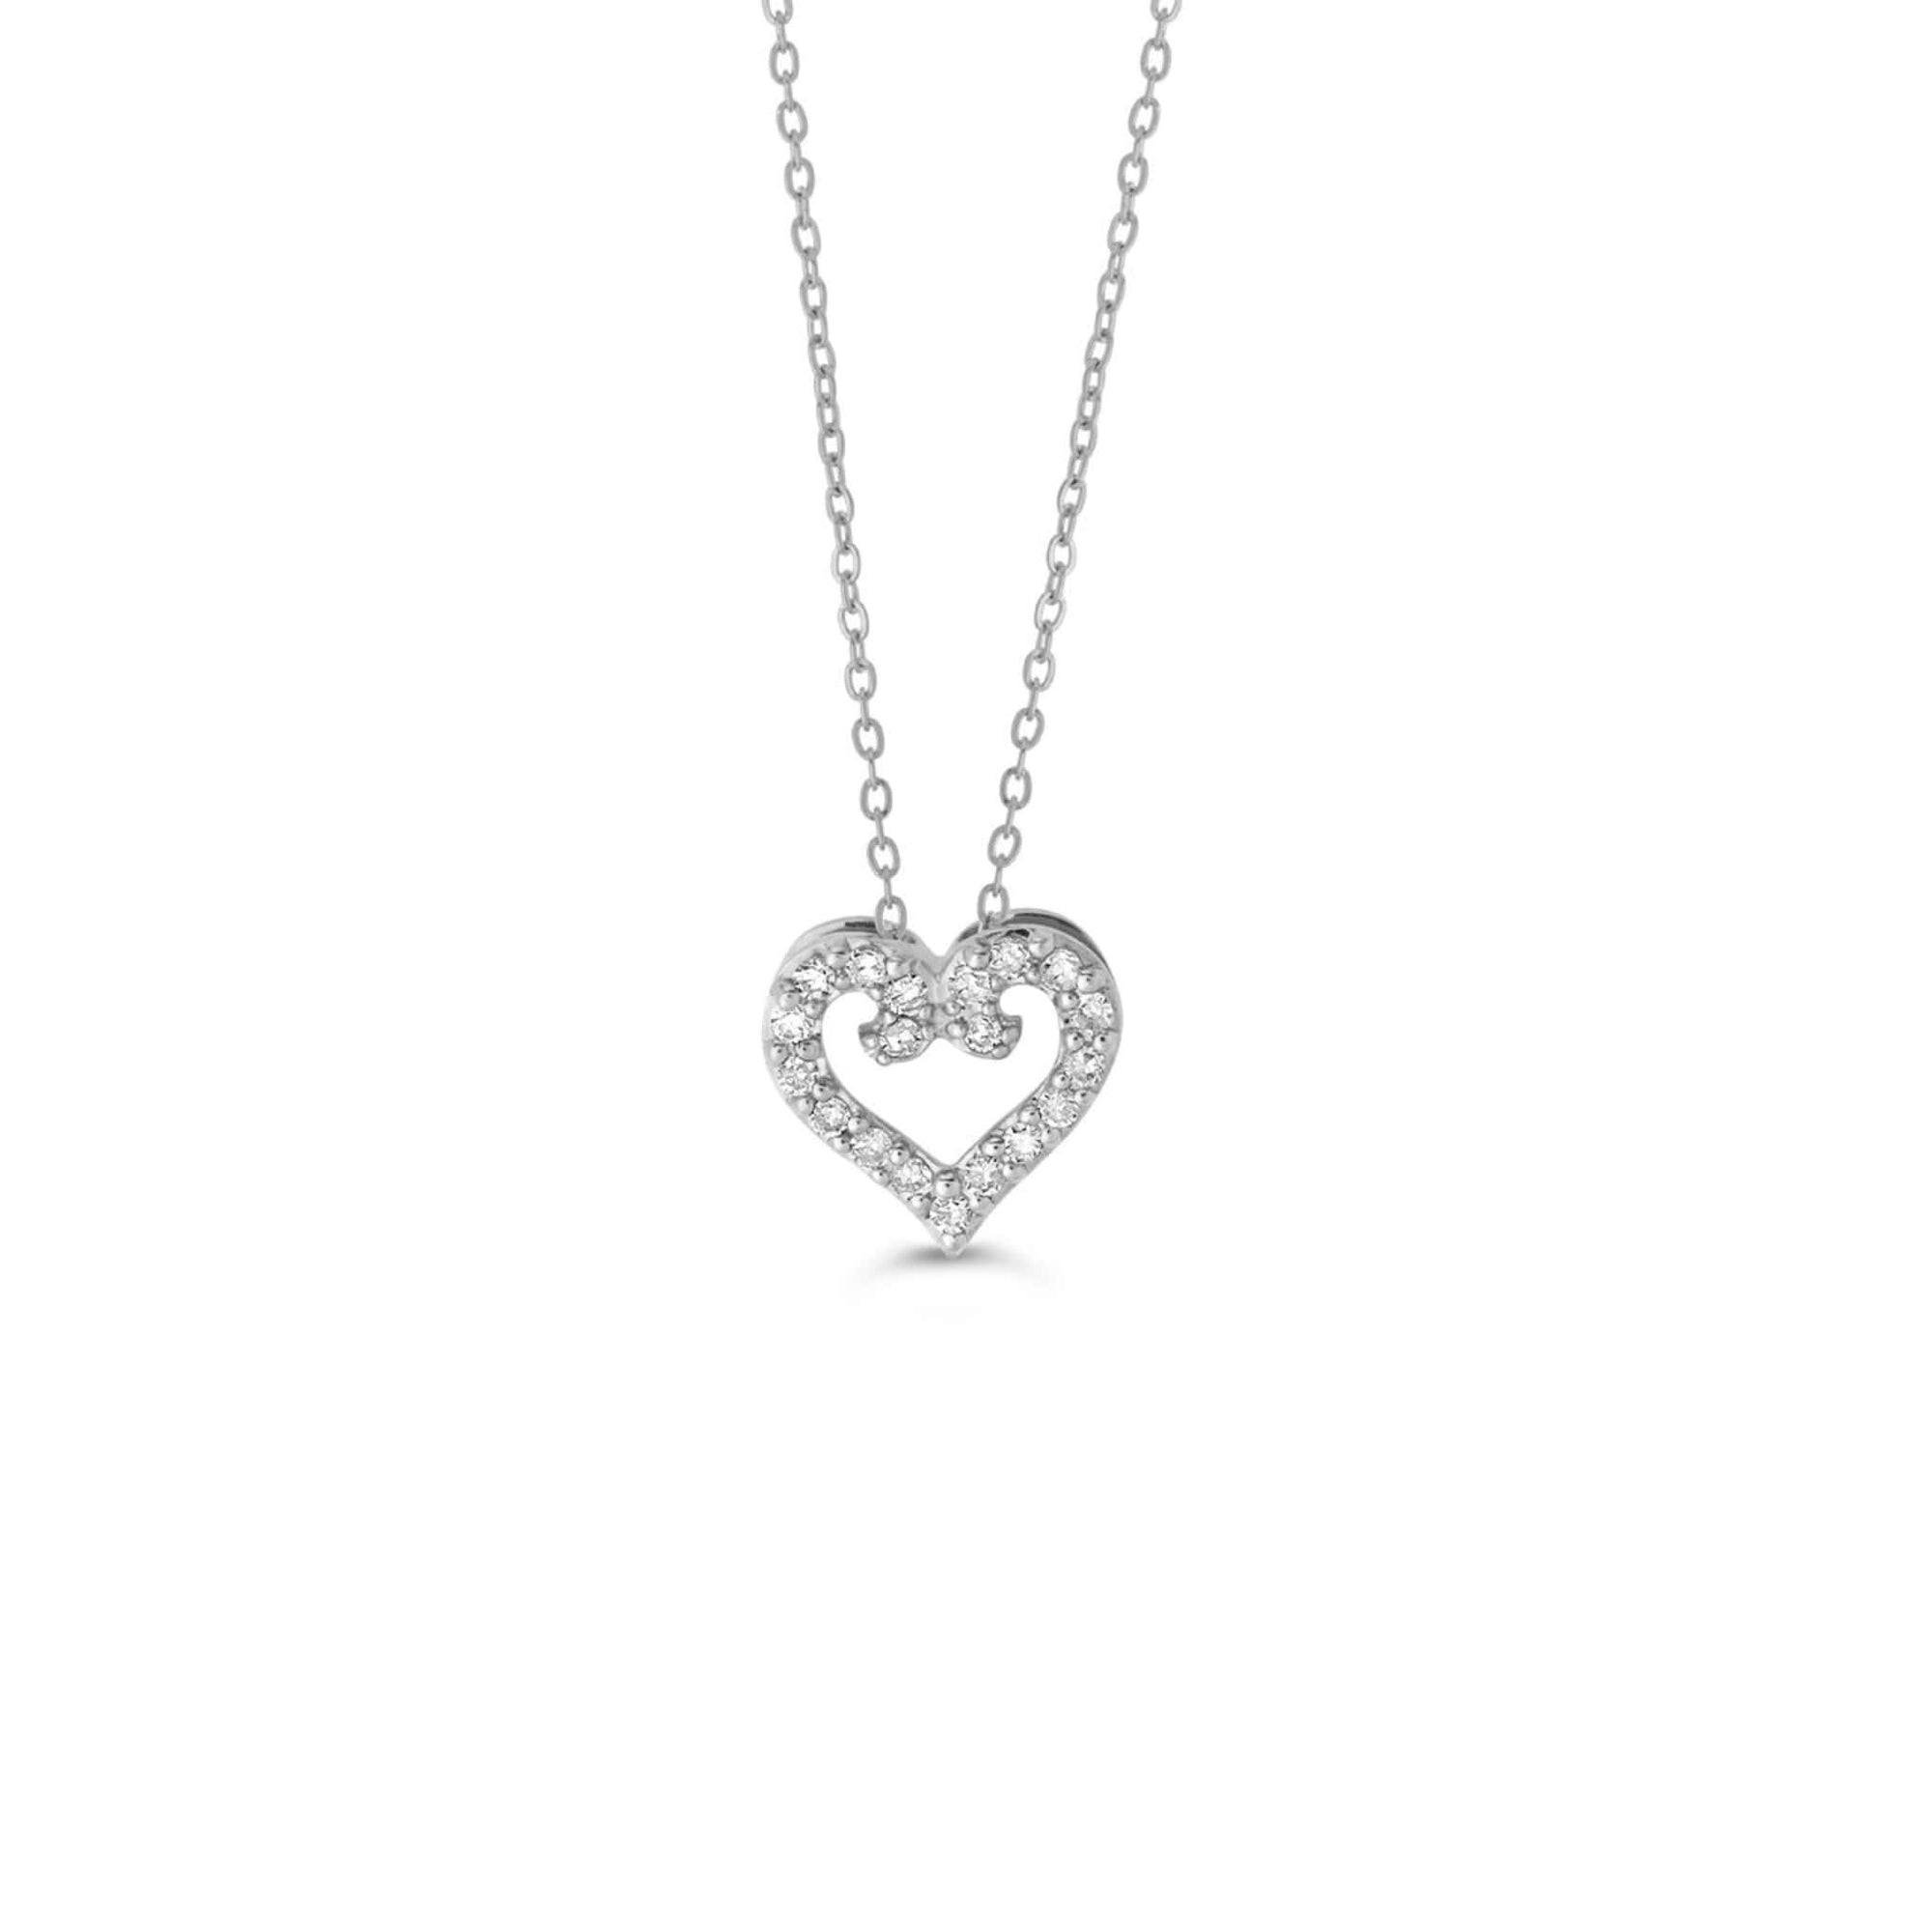 10K Yellow Gold 0.10ctw Diamond Heart Necklace at Arman's Jewellers